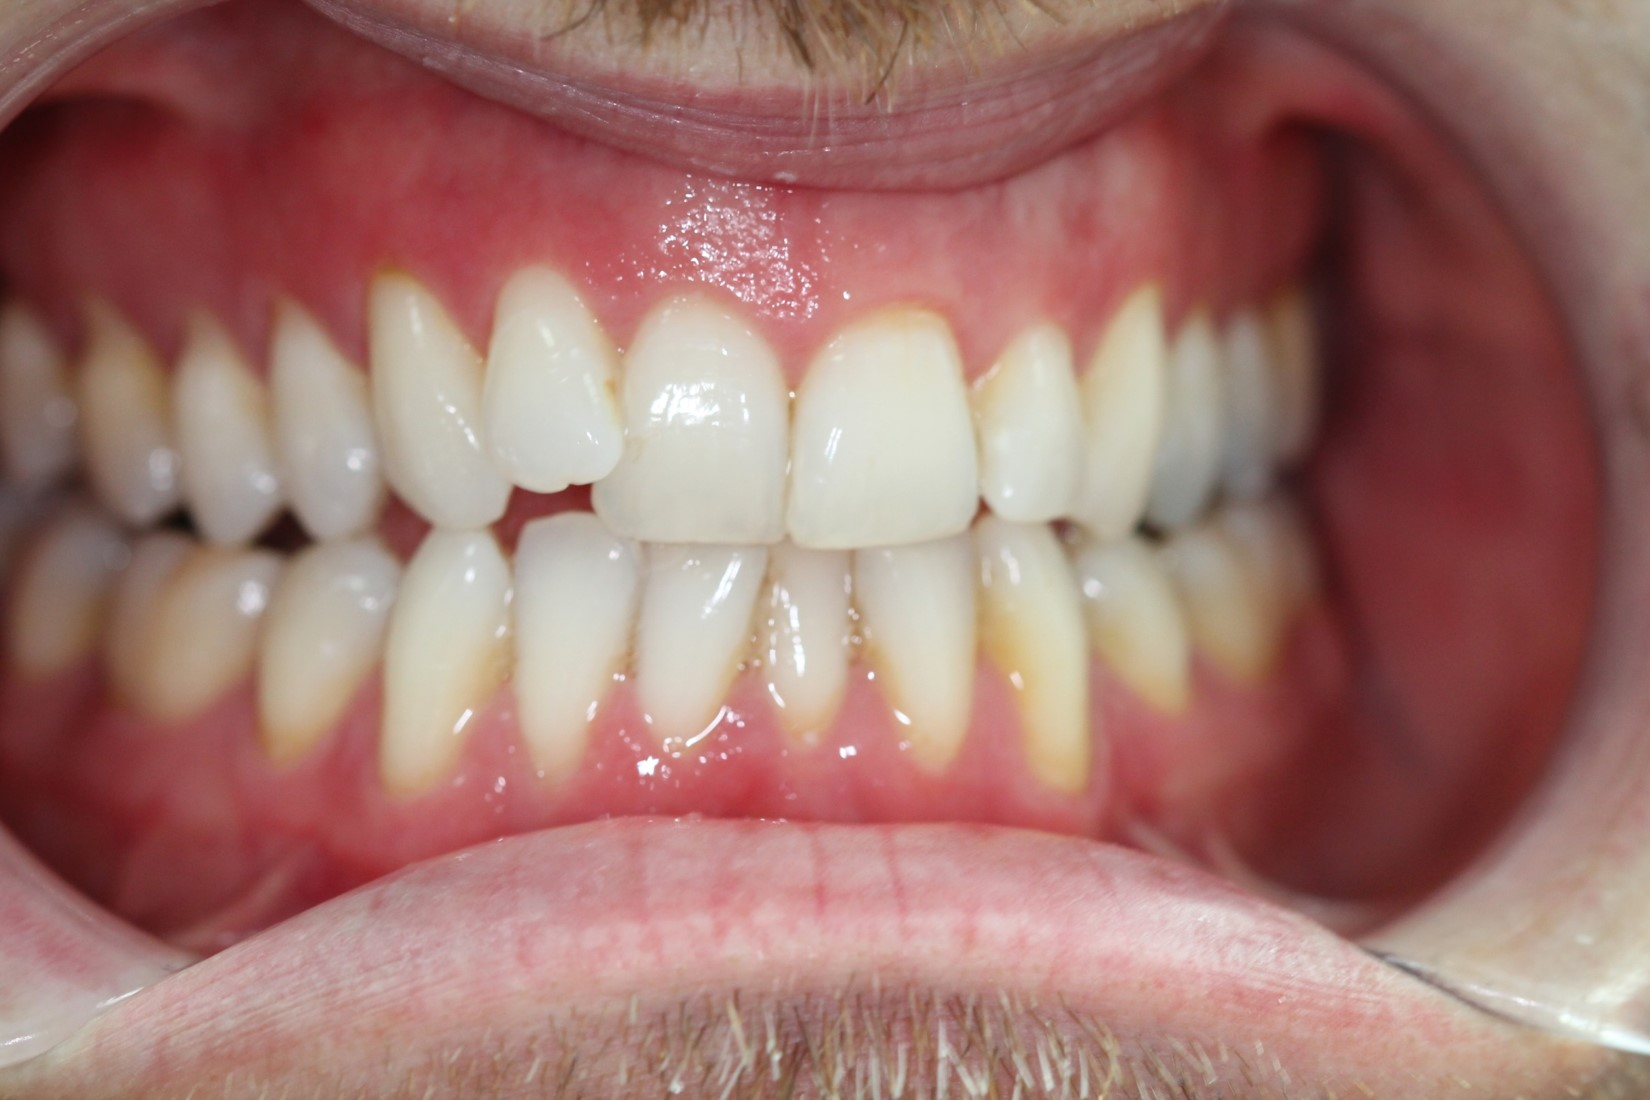 Smile Makeover at tooth (top teeth) - before